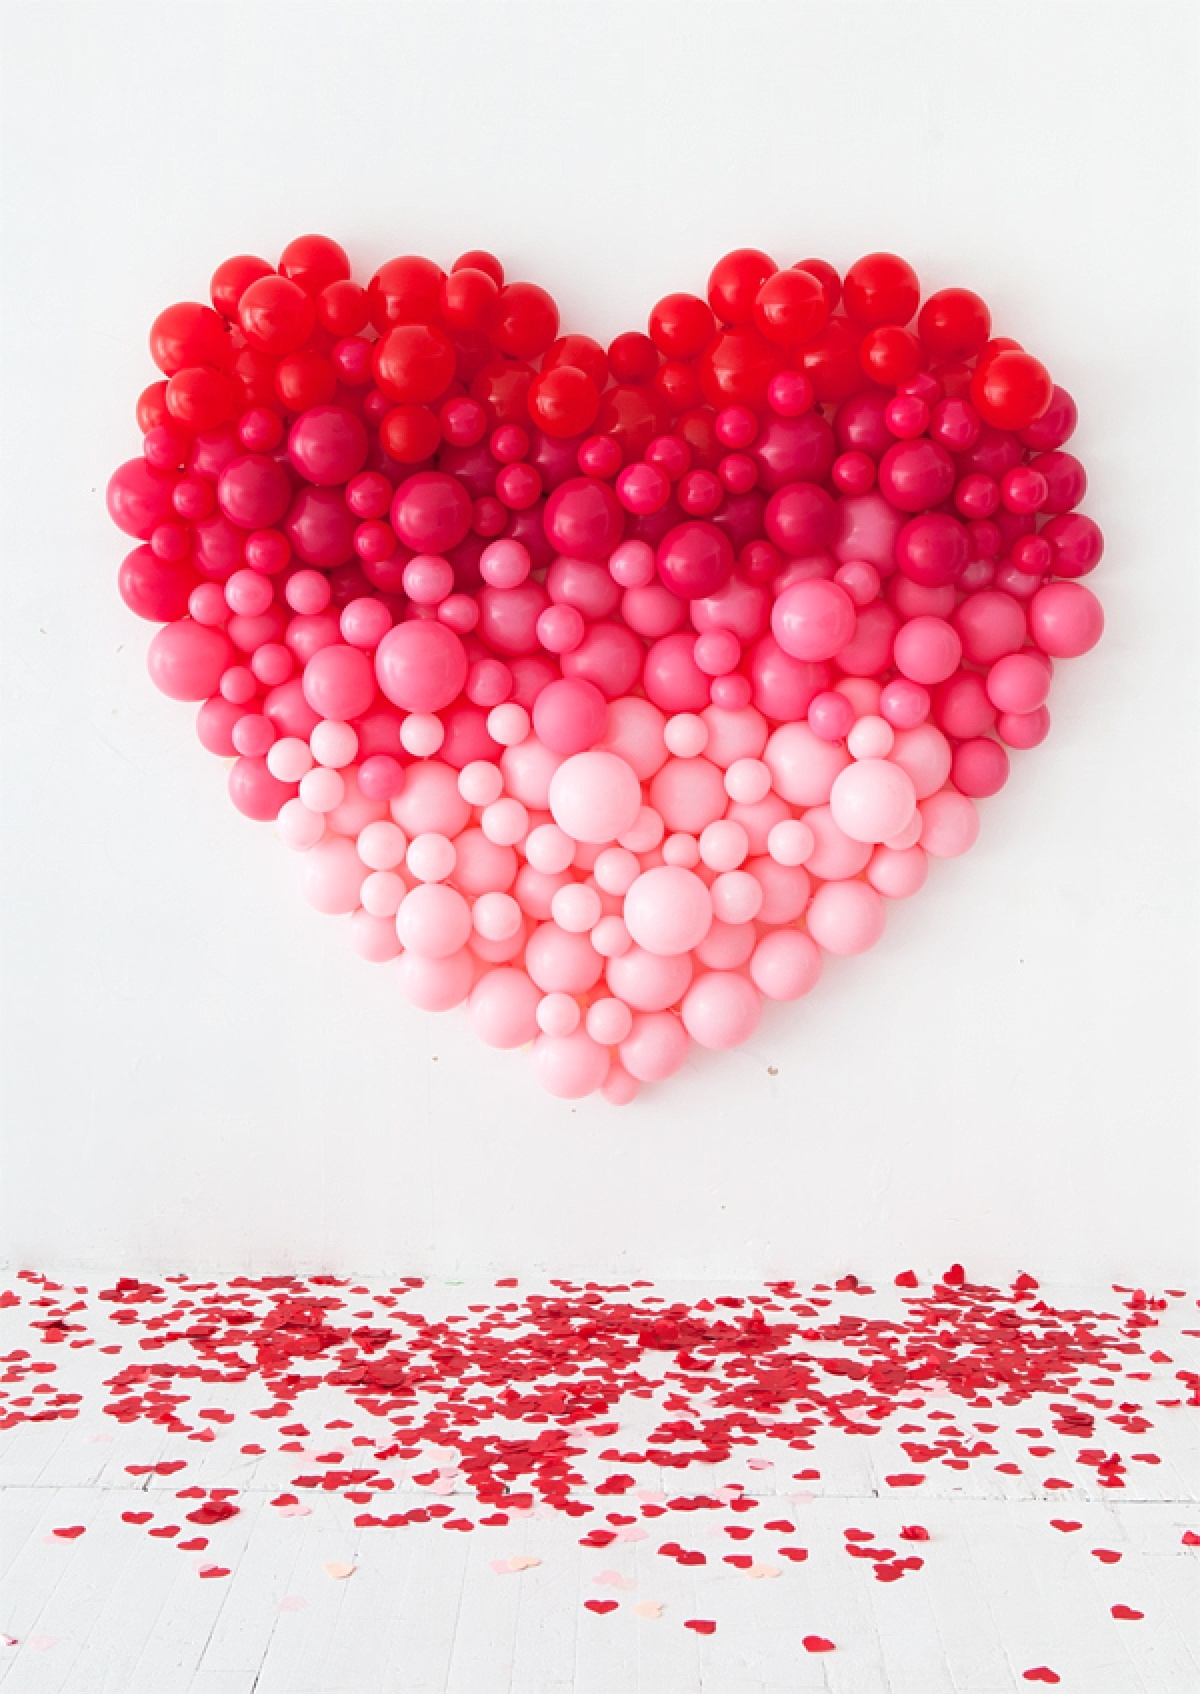 Ombre heart baloon sculpture hanging on white wall with cutout red and pink hearts scattered on the ground below